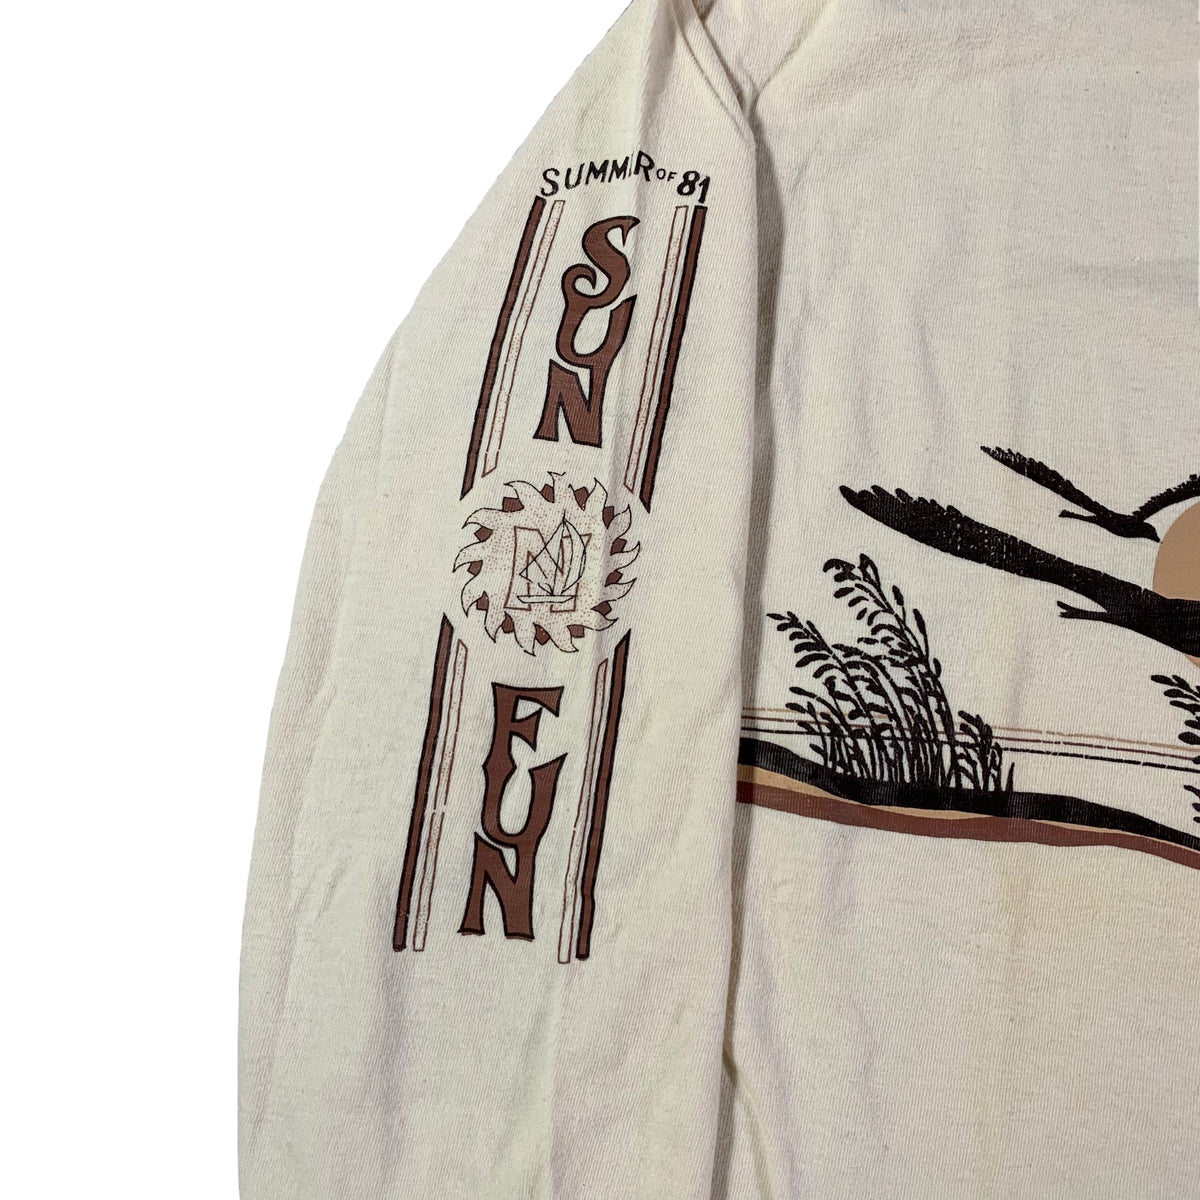 "Vintage Summer of '81 ""Sun Fun"" Long Sleeve Shirt"